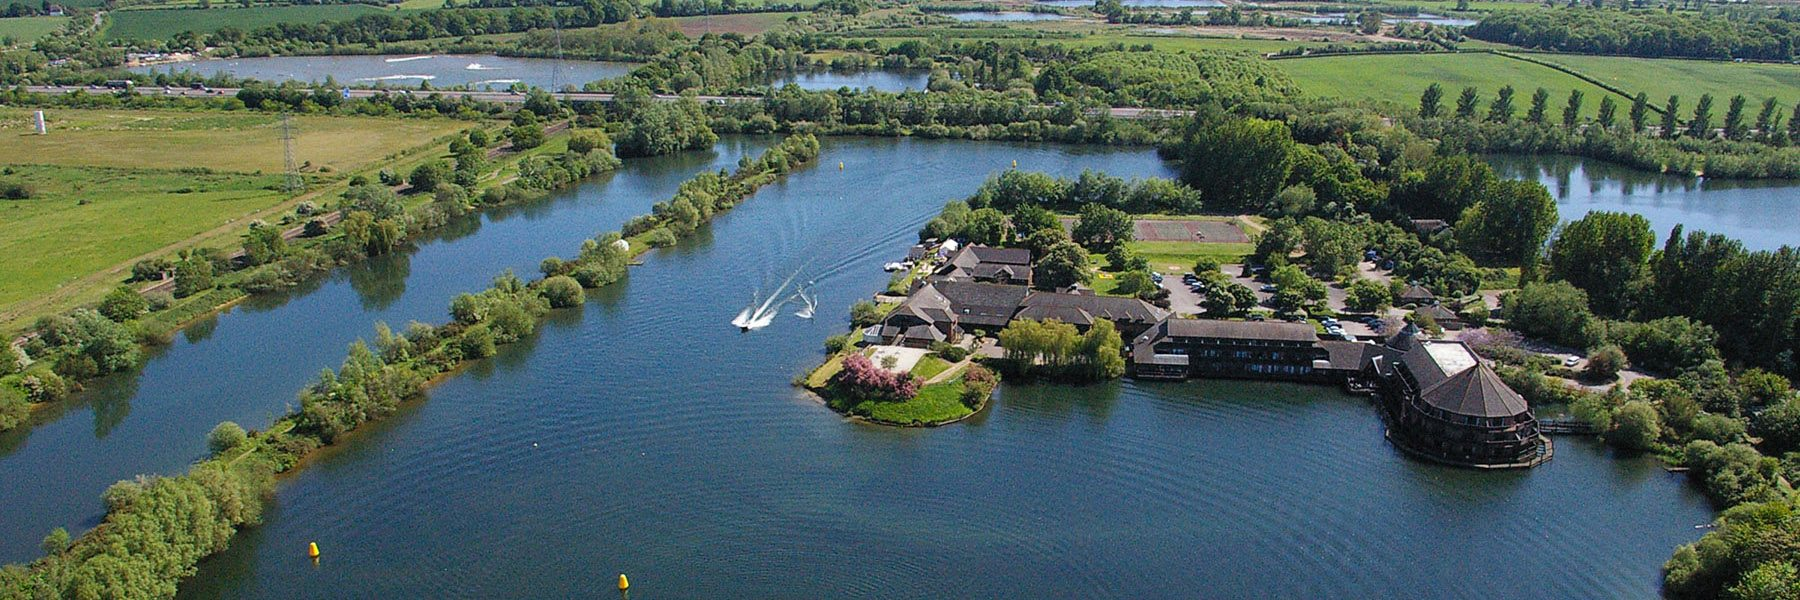 waterski and watersports in reading berkshire